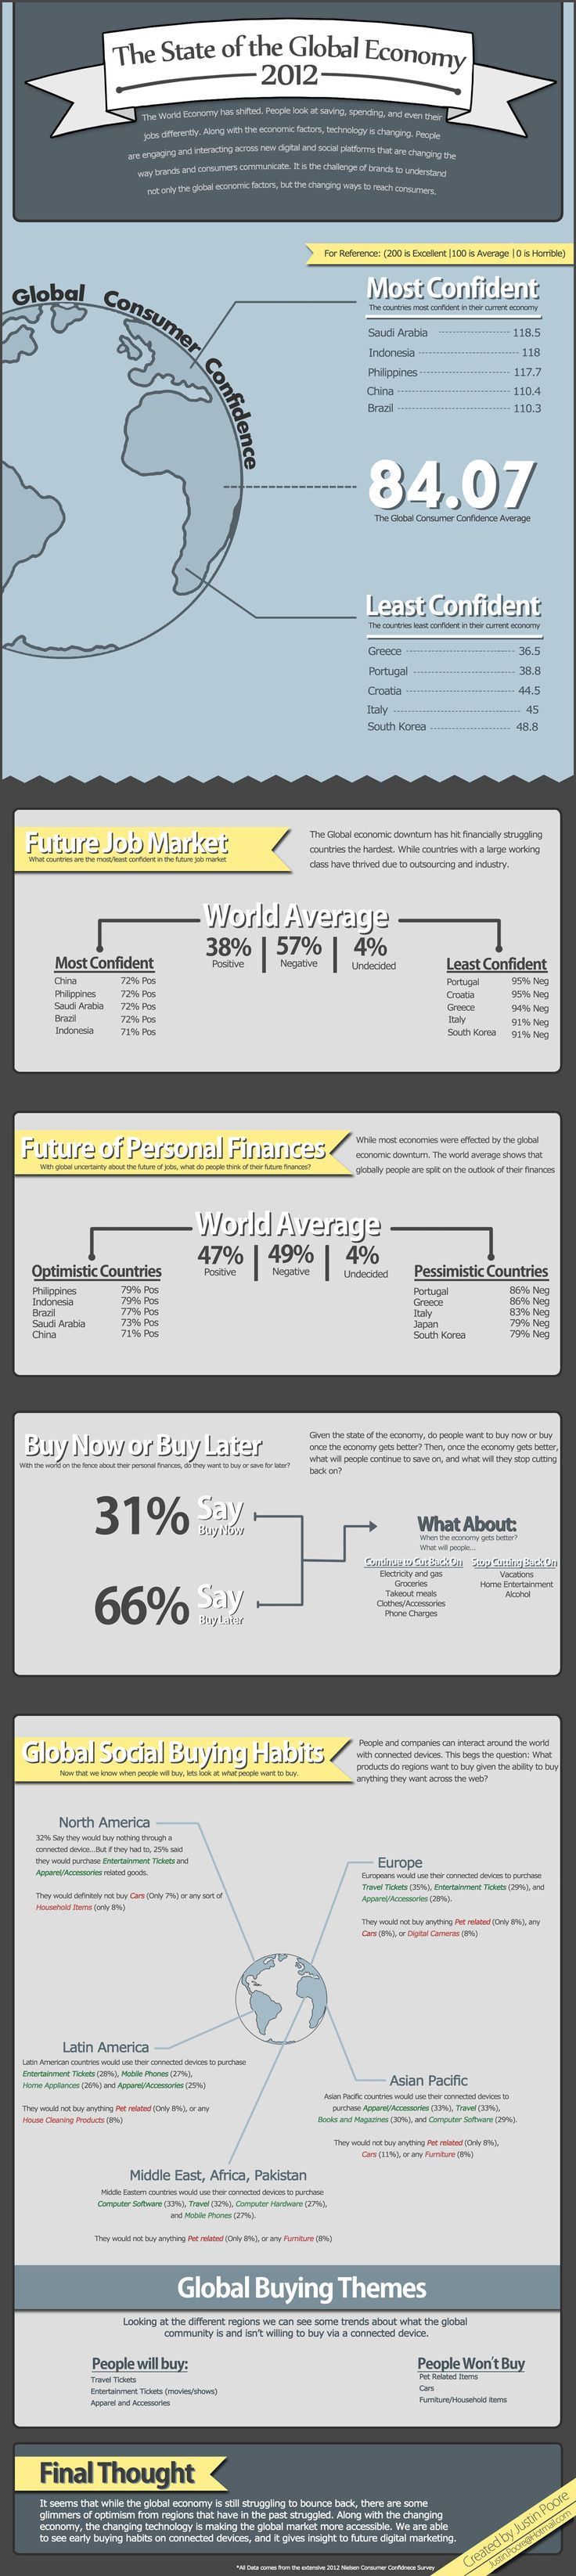 The state of global economy 2012 #infographic